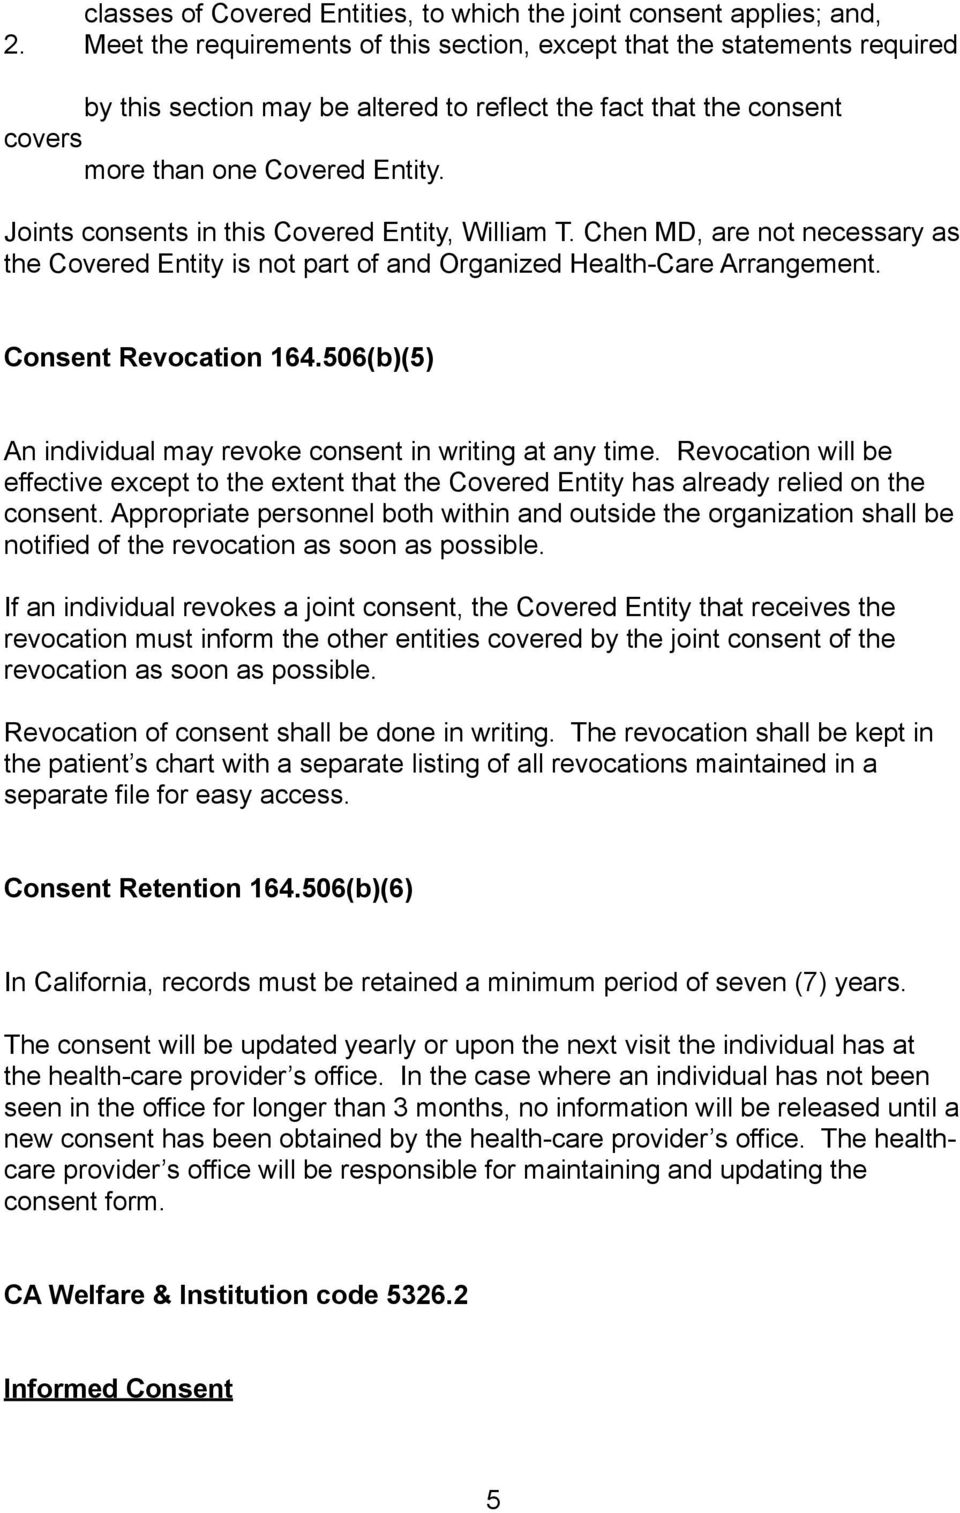 Joints consents in this Covered Entity, William T. Chen MD, are not necessary as the Covered Entity is not part of and Organized Health-Care Arrangement. Consent Revocation 164.